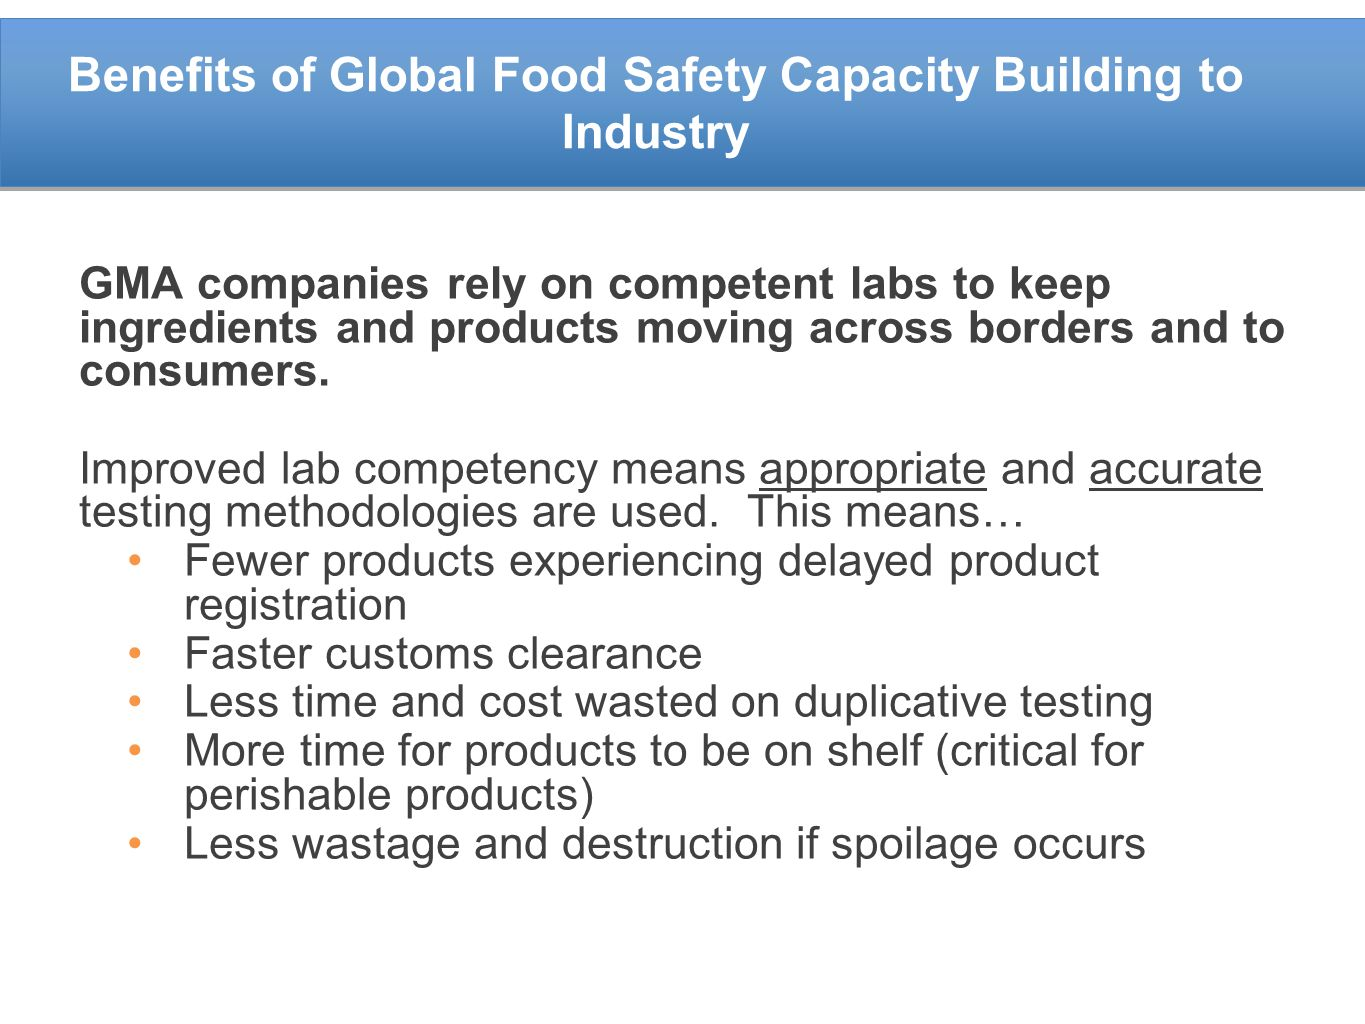 Benefits of Global Food Safety Capacity Building to Industry GMA companies rely on competent labs to keep ingredients and products moving across borders and to consumers.